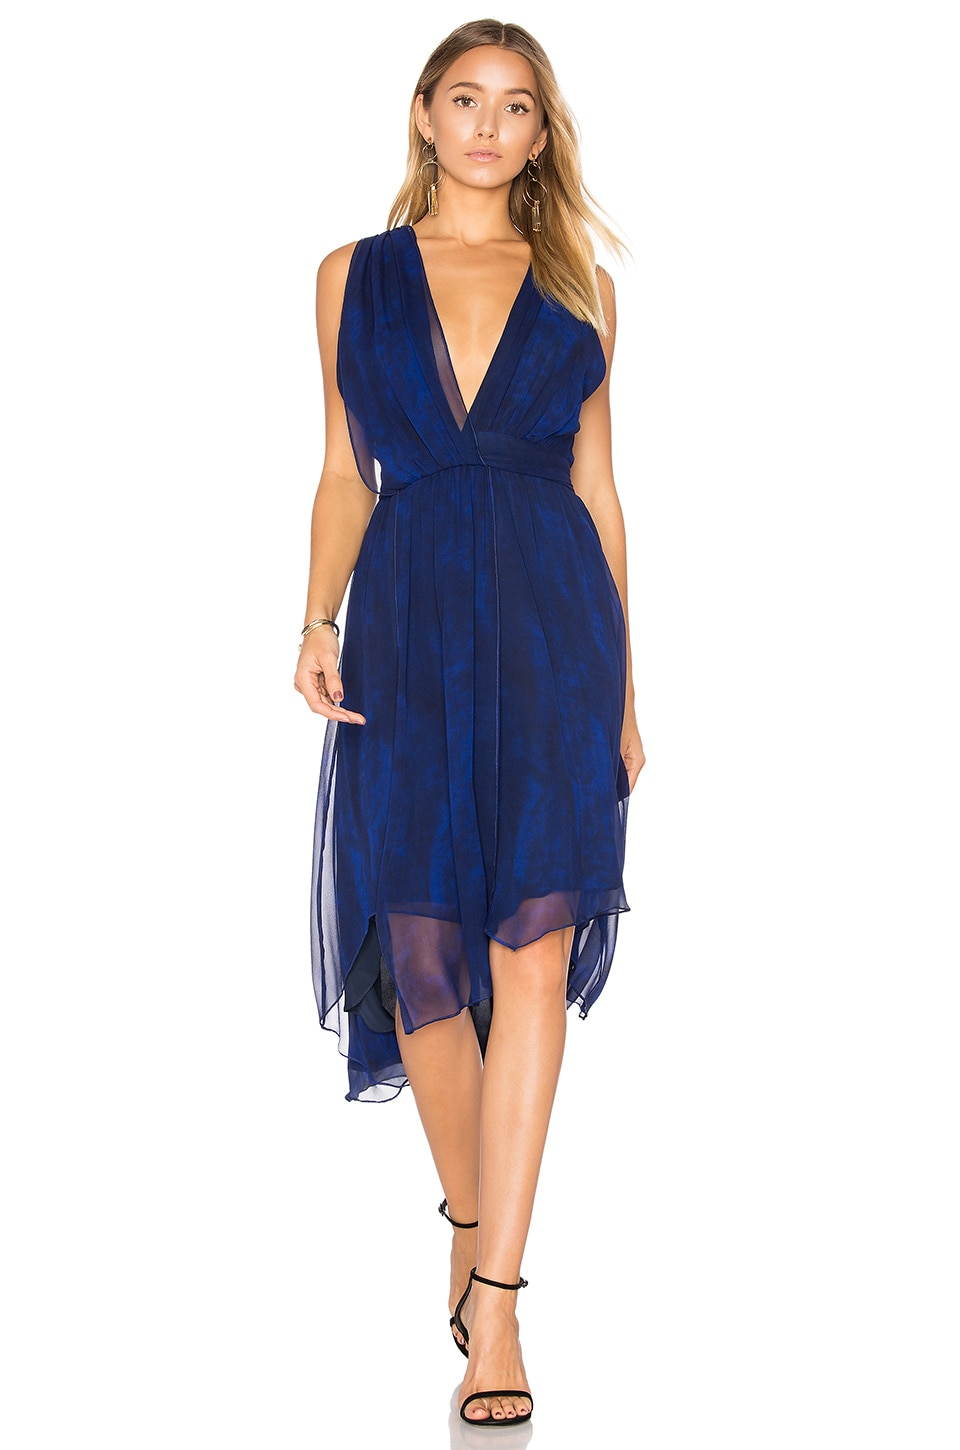 Miles To Go Dress by Haute Hippie